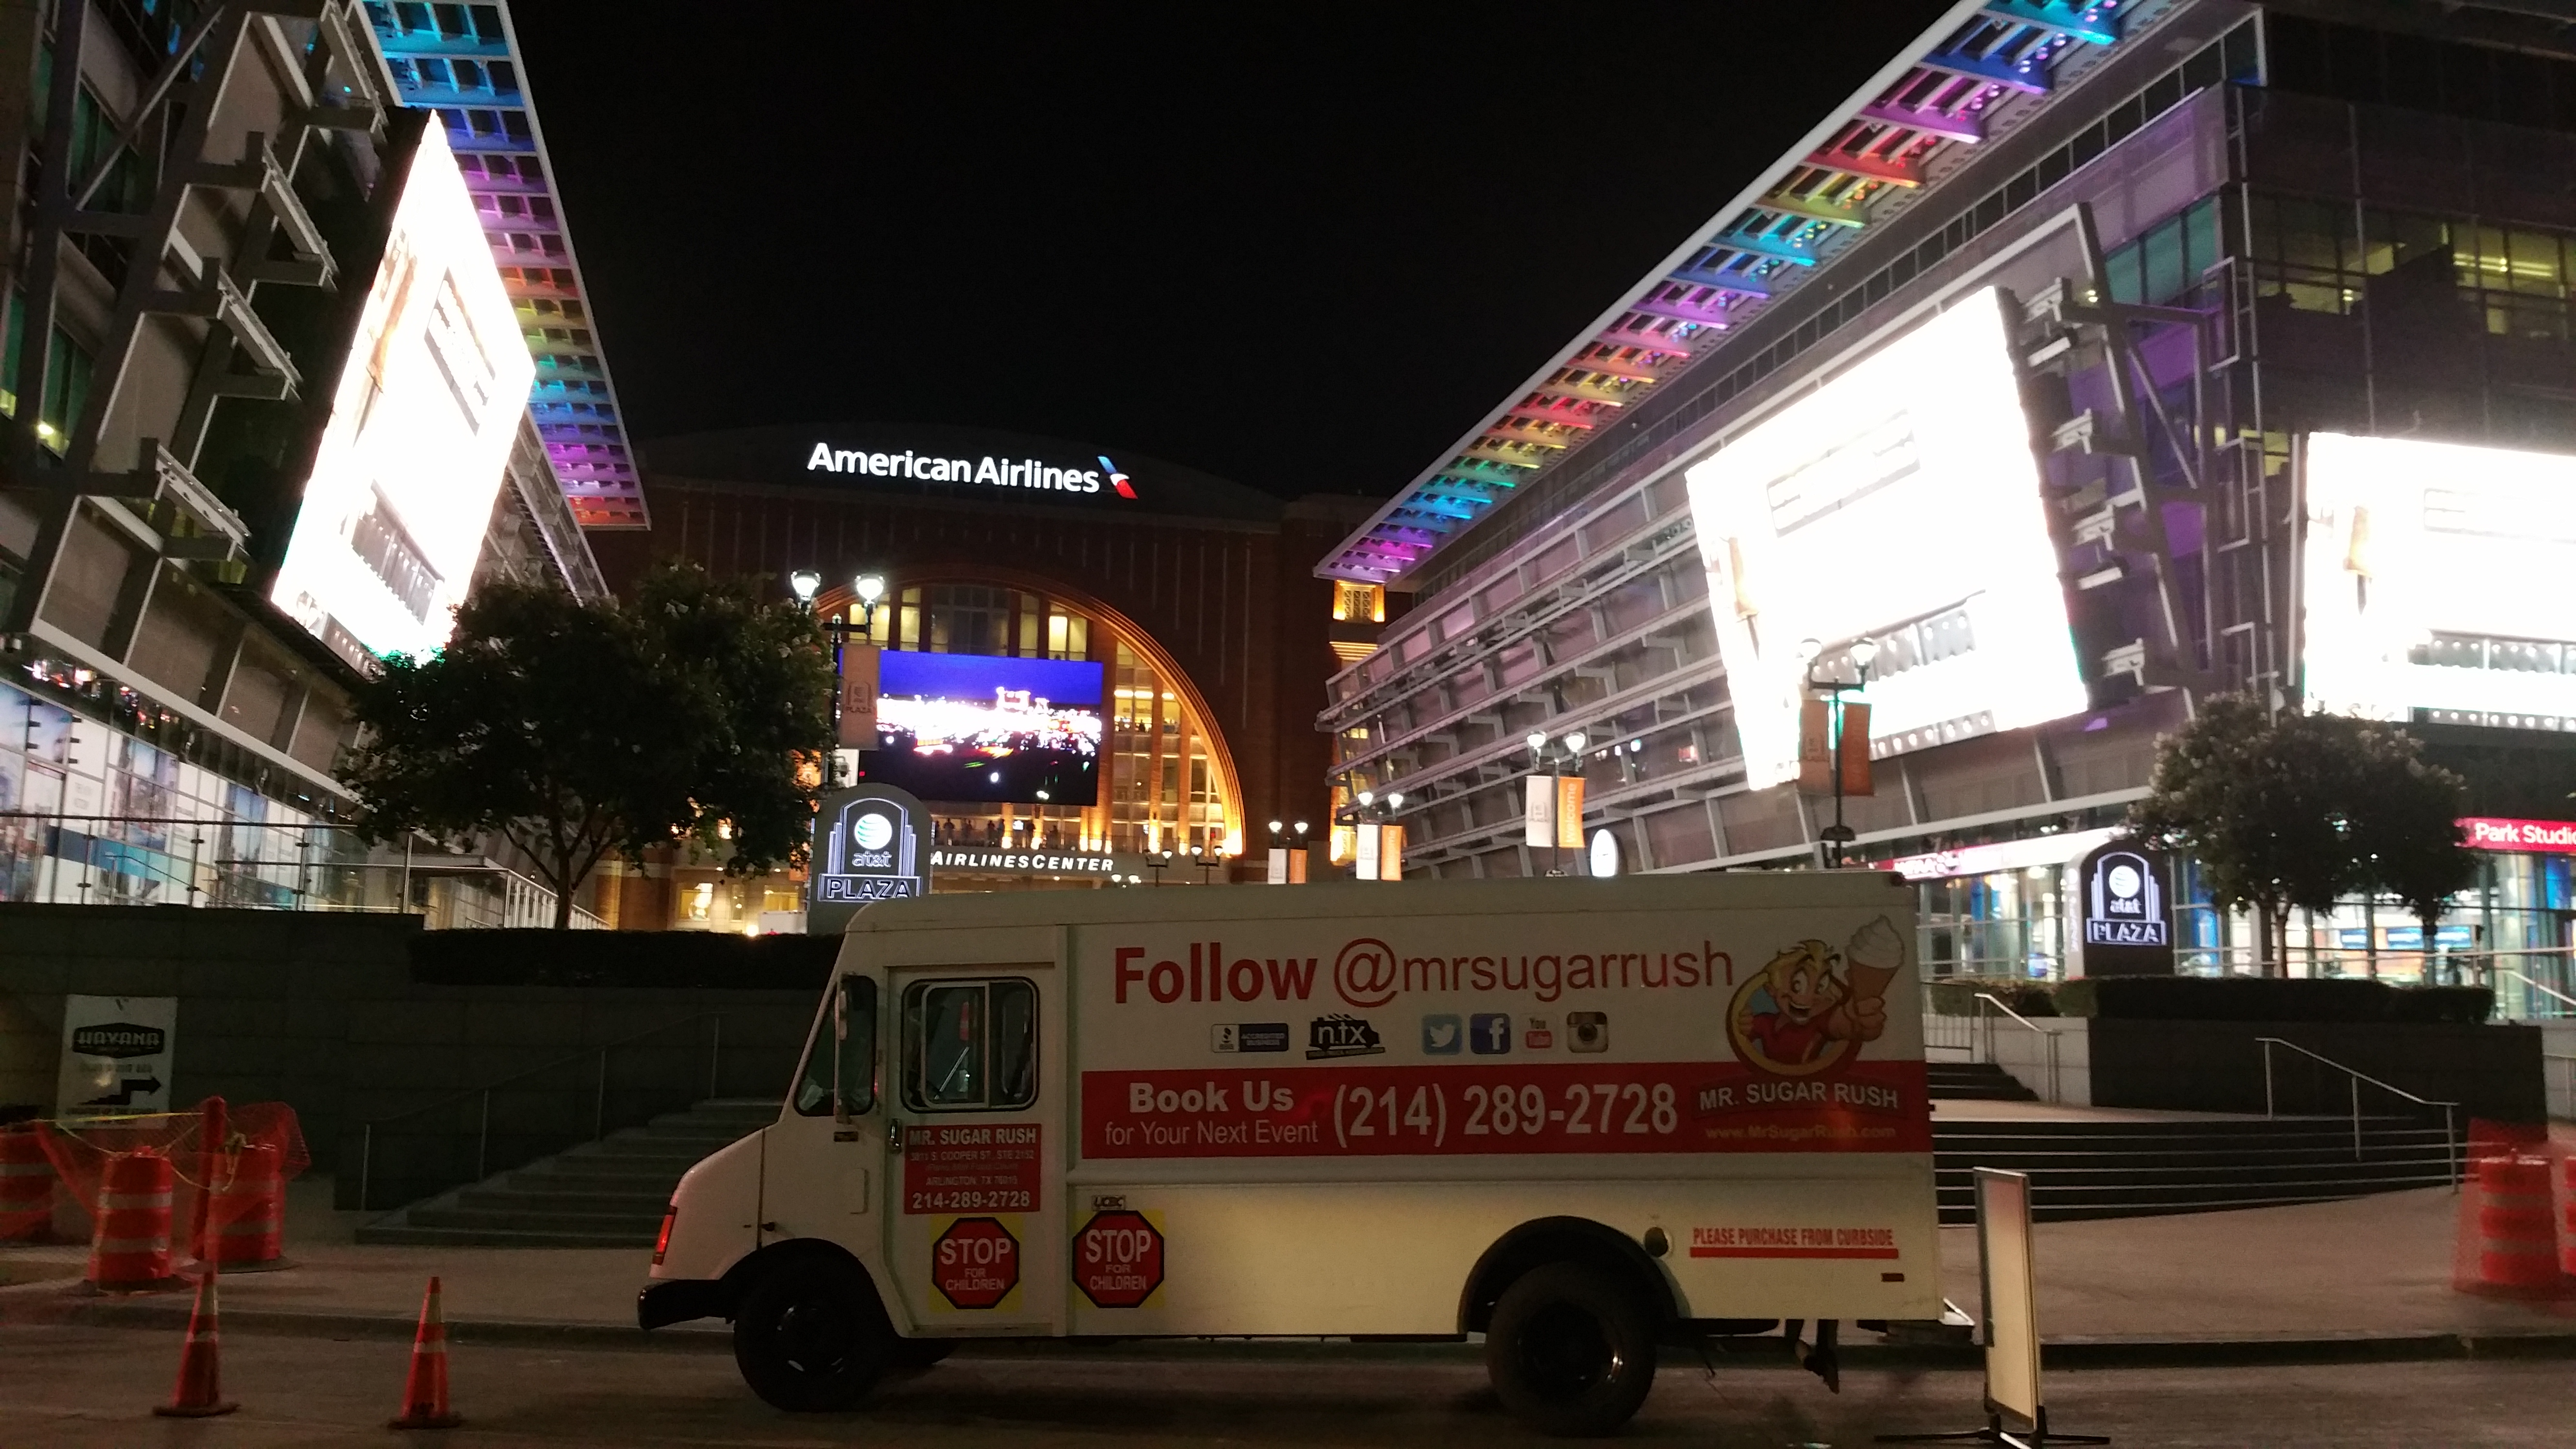 Msr at american airlines center garth brooks series